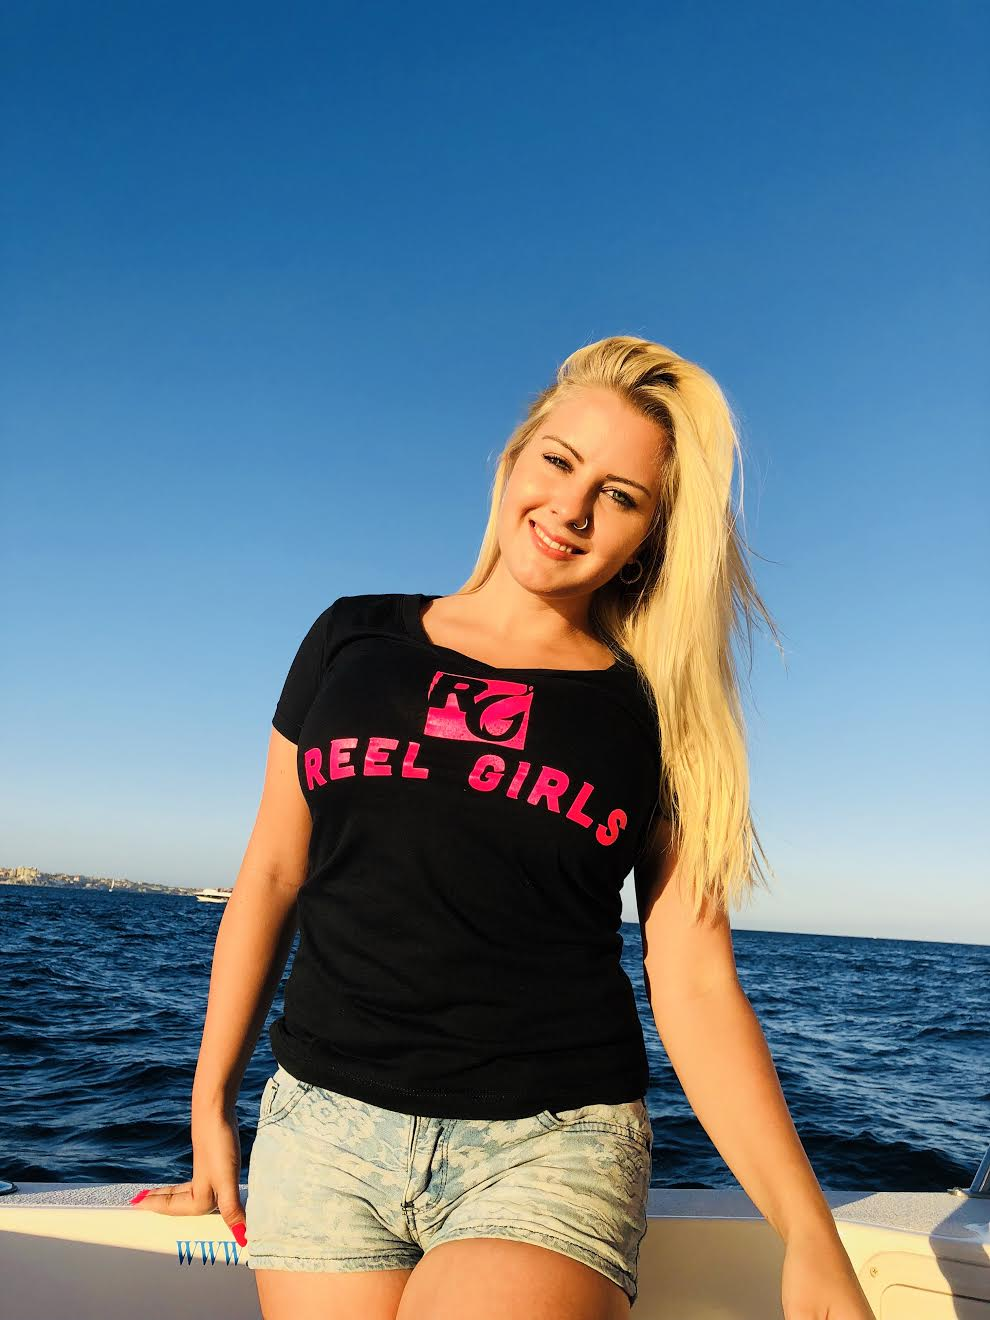 Reel Girls Logo V Neck T-Shirt - Black with Pink - Destin Outdoors